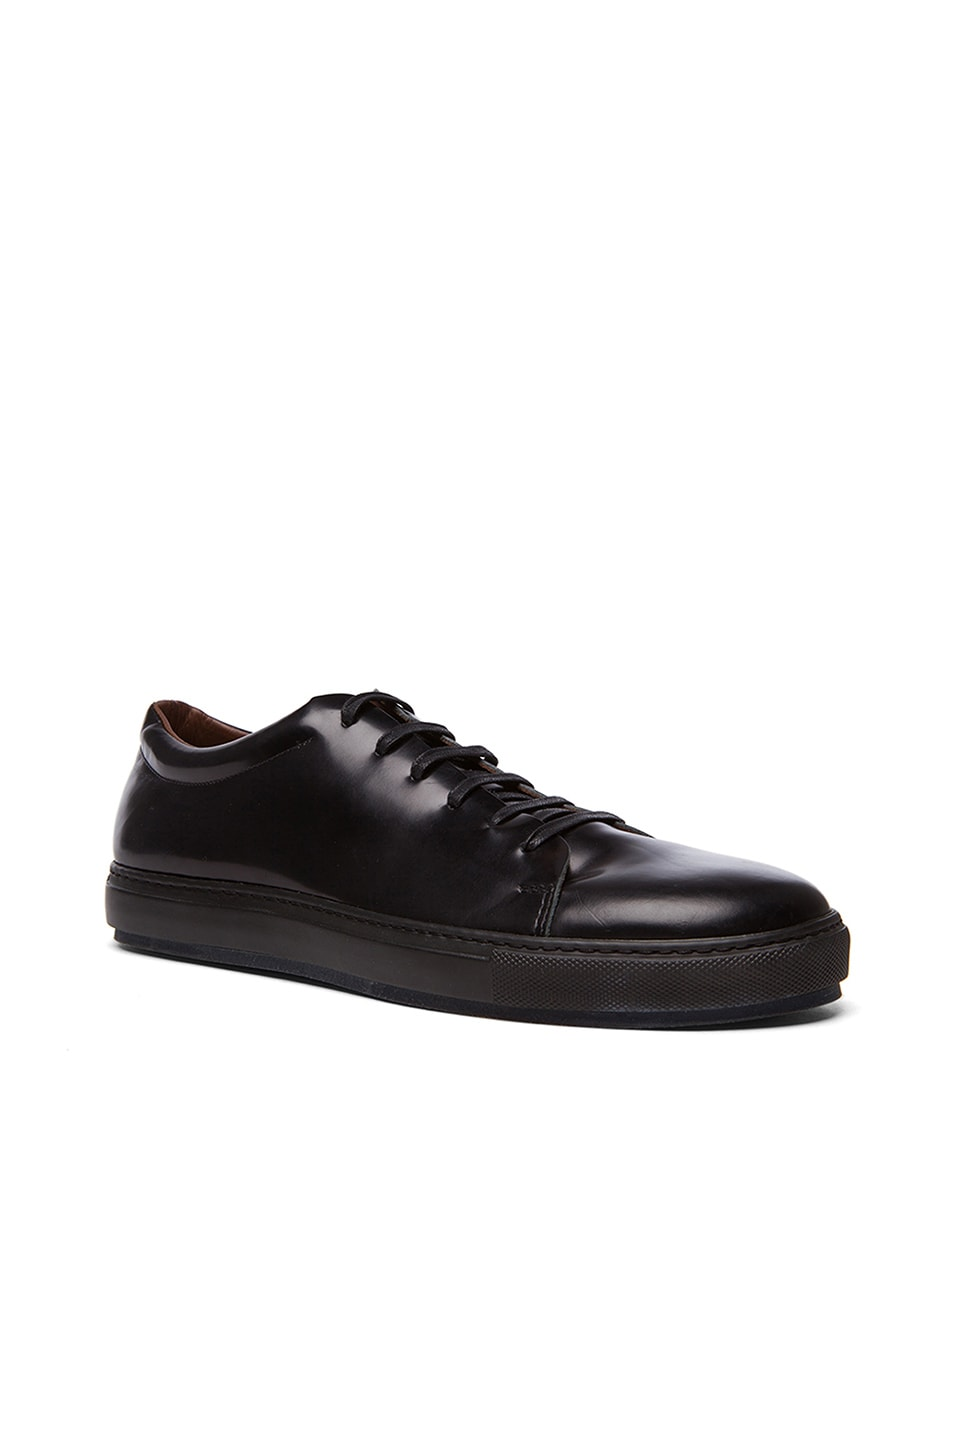 Image 1 of Acne Studios Adrian Calfskin Leather Sneakers in Black